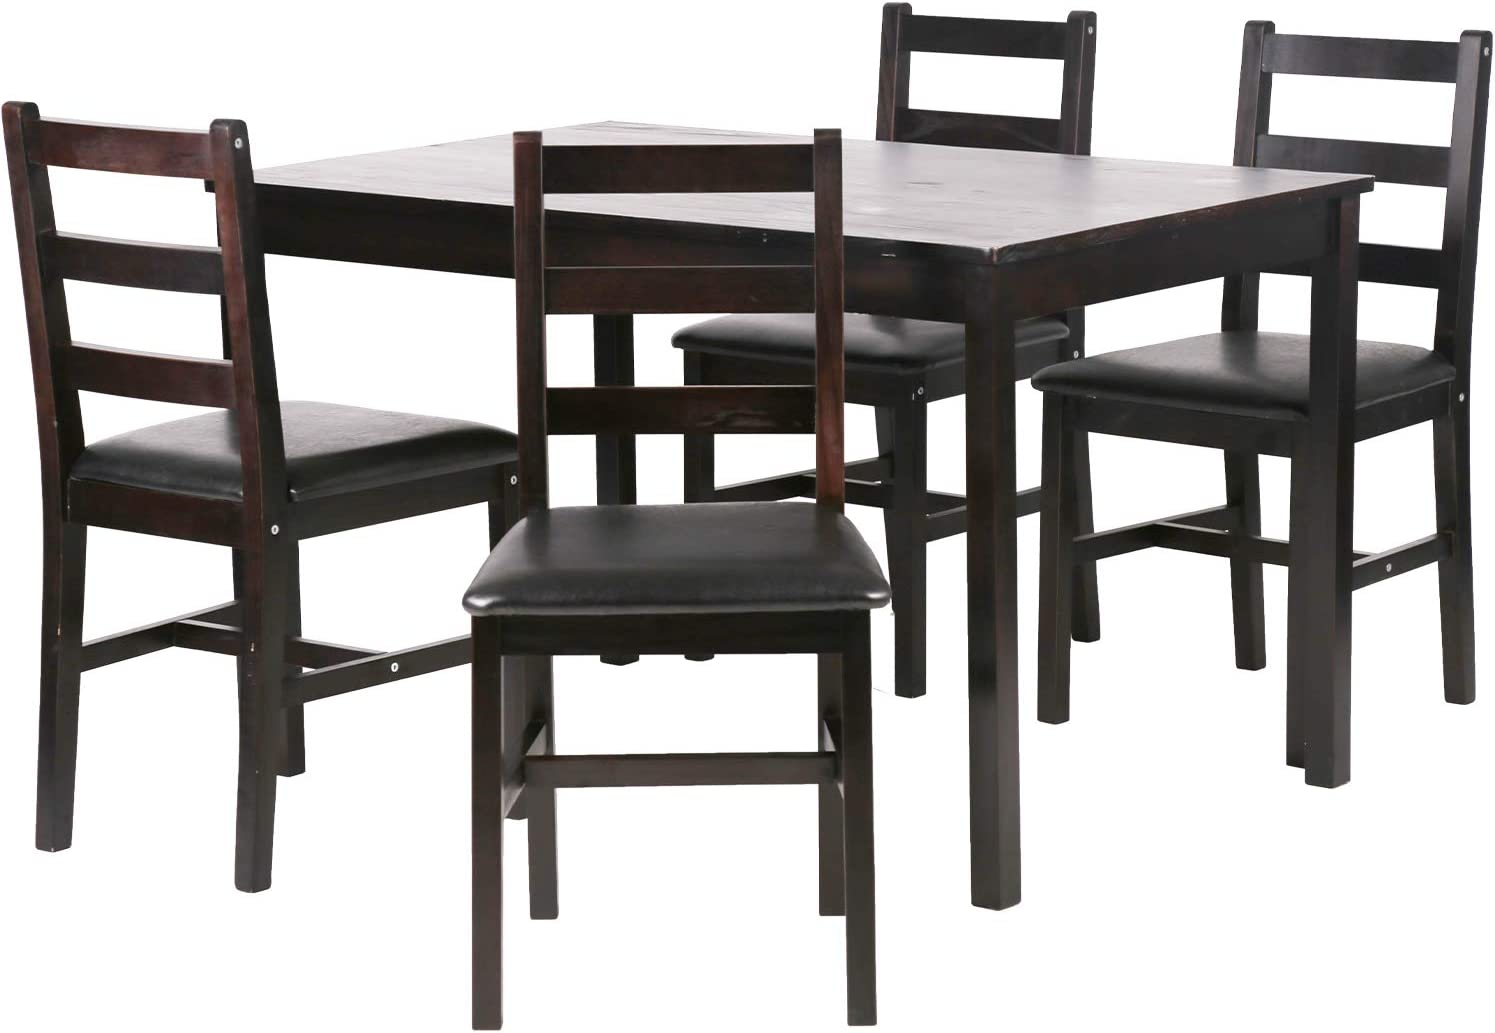 Buy Dining Table Set Kitchen Dining Table Set Wood Table and ...